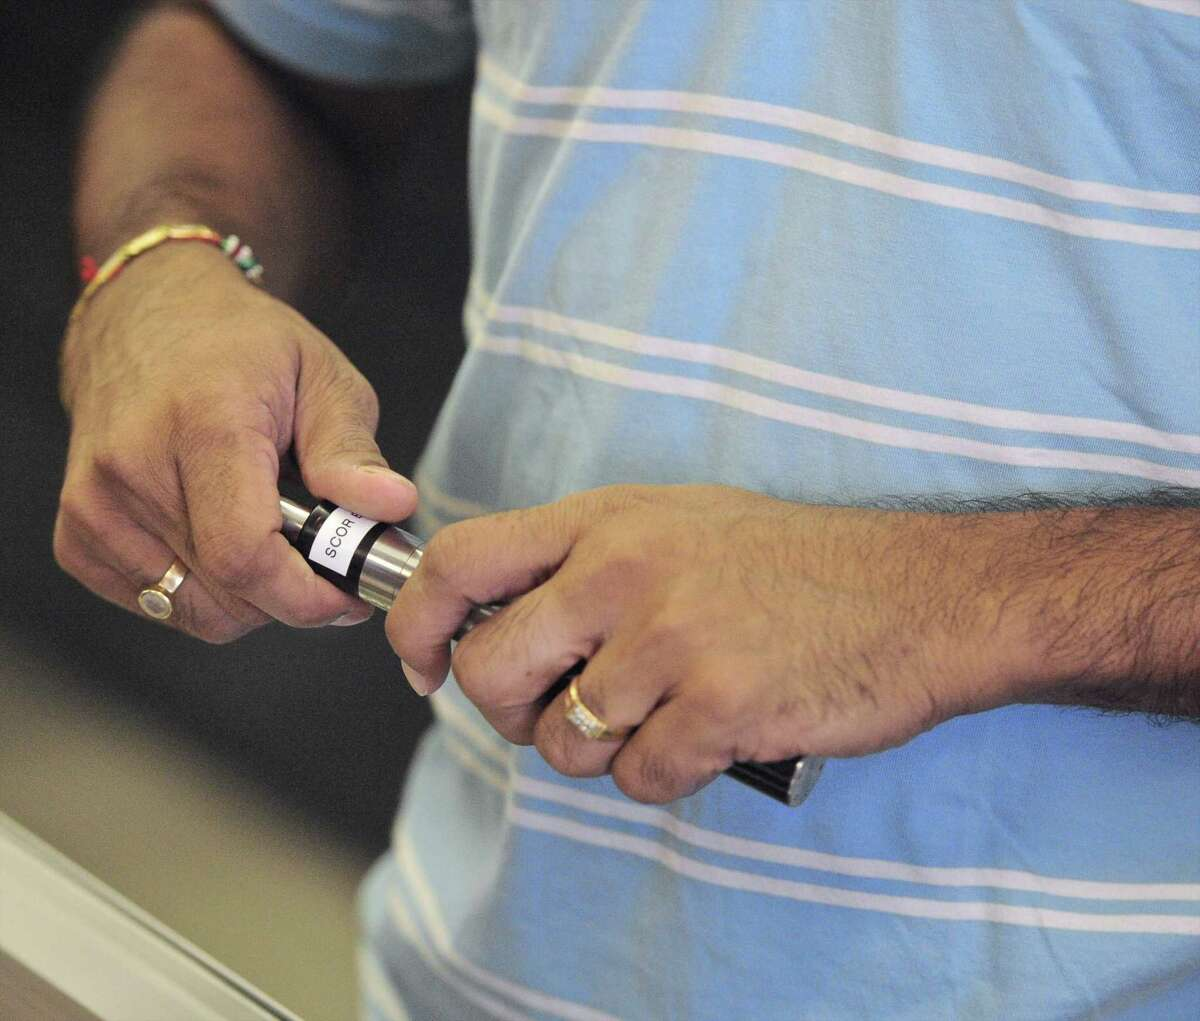 Twilight Vapor owner Saiyam Shah changes the flavored vape liquid for a customer to sample on Tuesday. State lawmaker's are calling for new regulations on vaping. August 30, 2016, in Danbury, Conn.